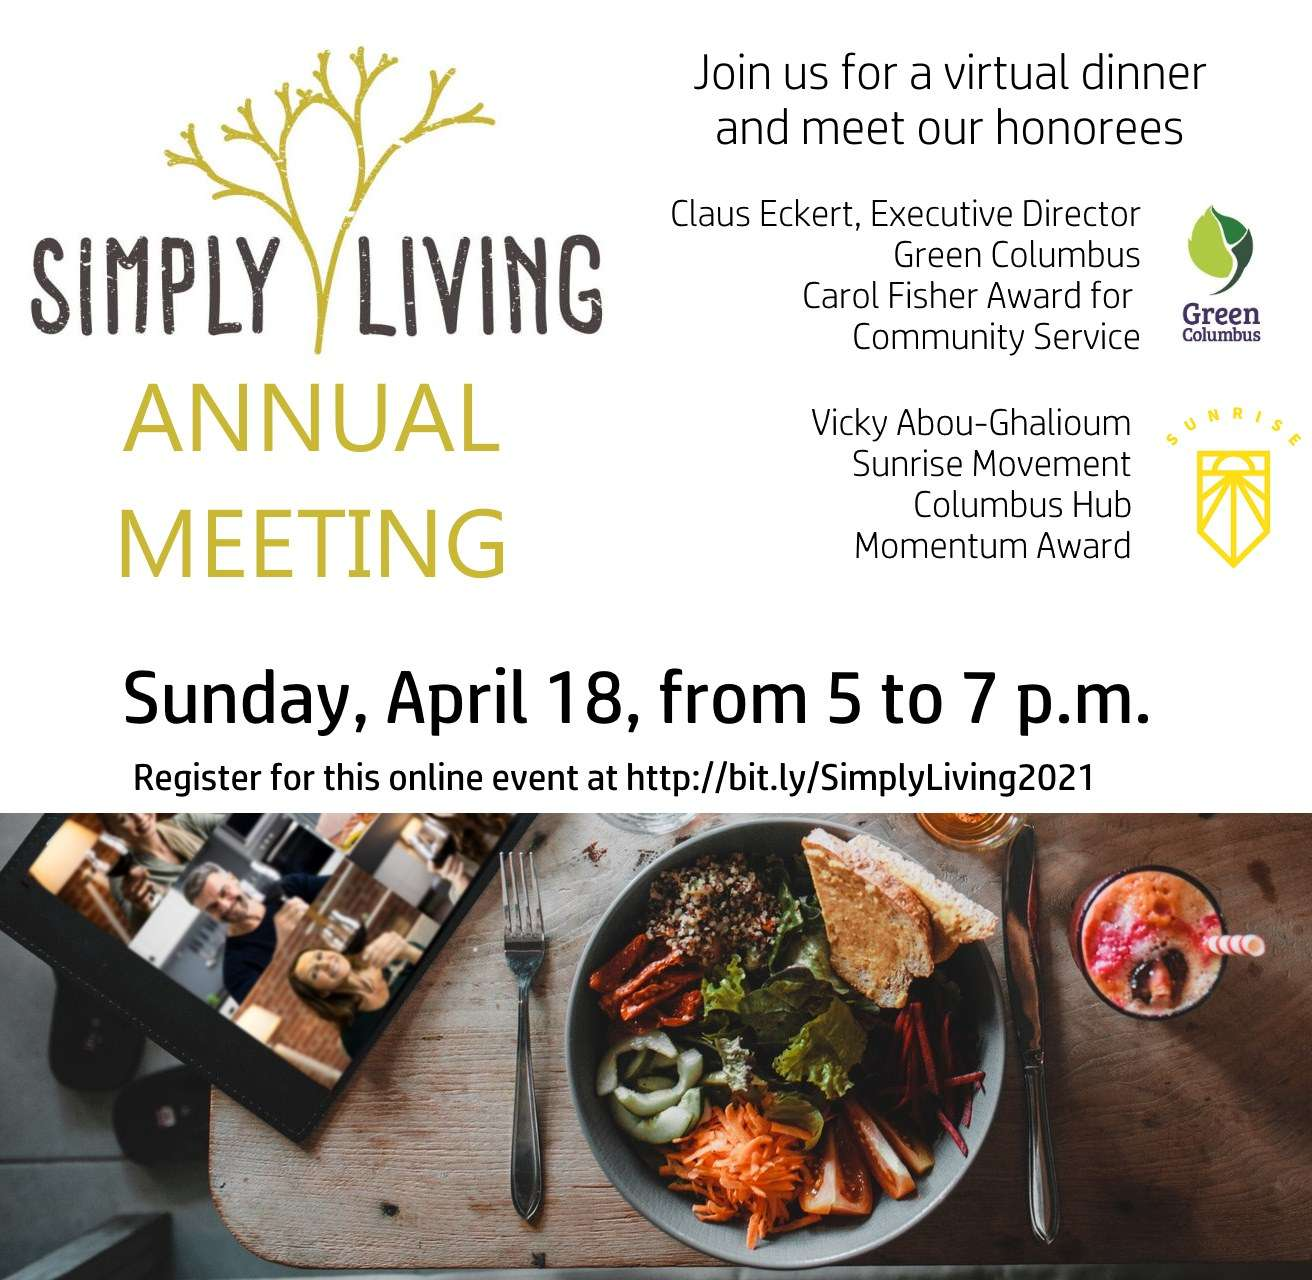 Simply Living Adds Board Members, Executive Director; Announces 2021 Annual Meeting